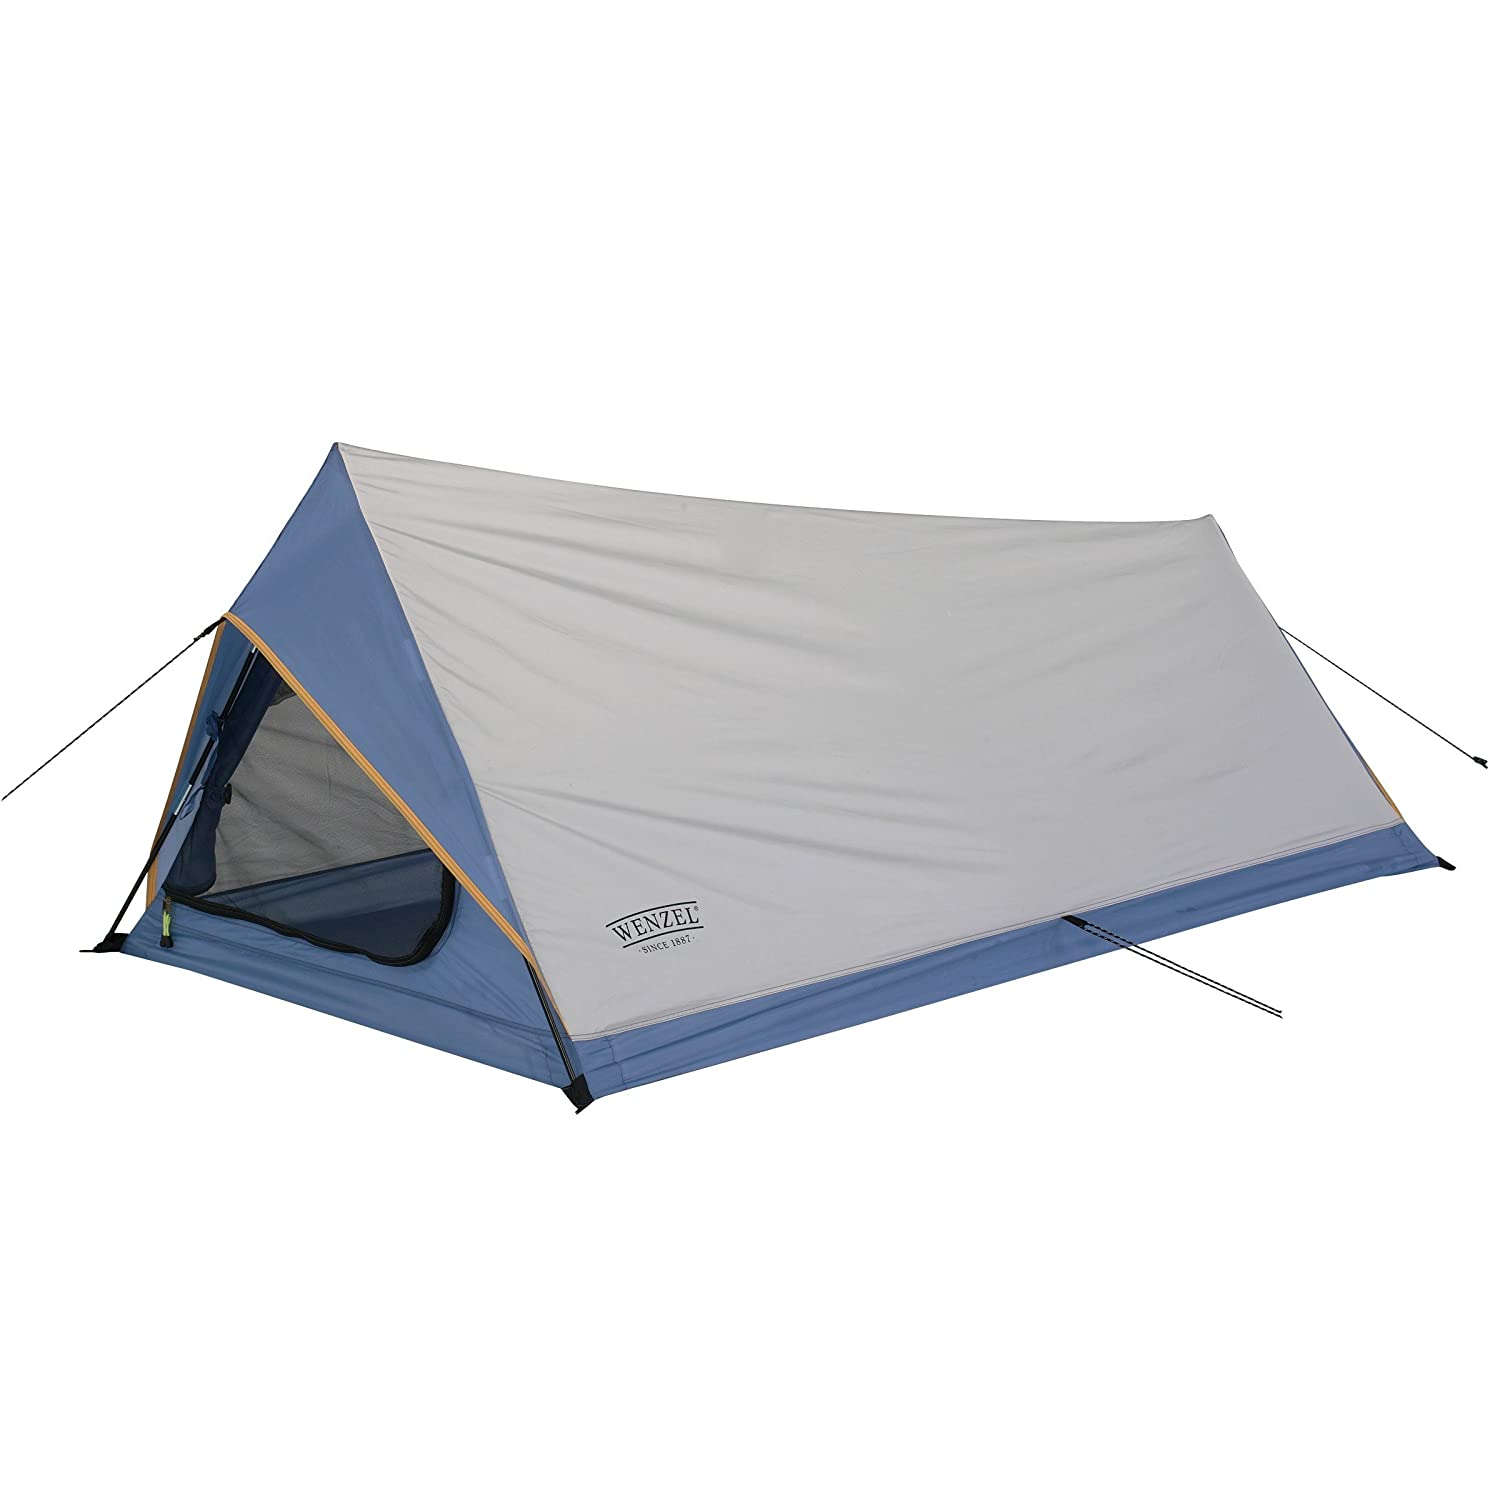 Wenzel Hiker Current Hiker Two-Person Two-Person Wenzel Tent [並行輸入品] B07R4T3C2C, 高橋商会:98a22105 --- mail.tastykhabar.com